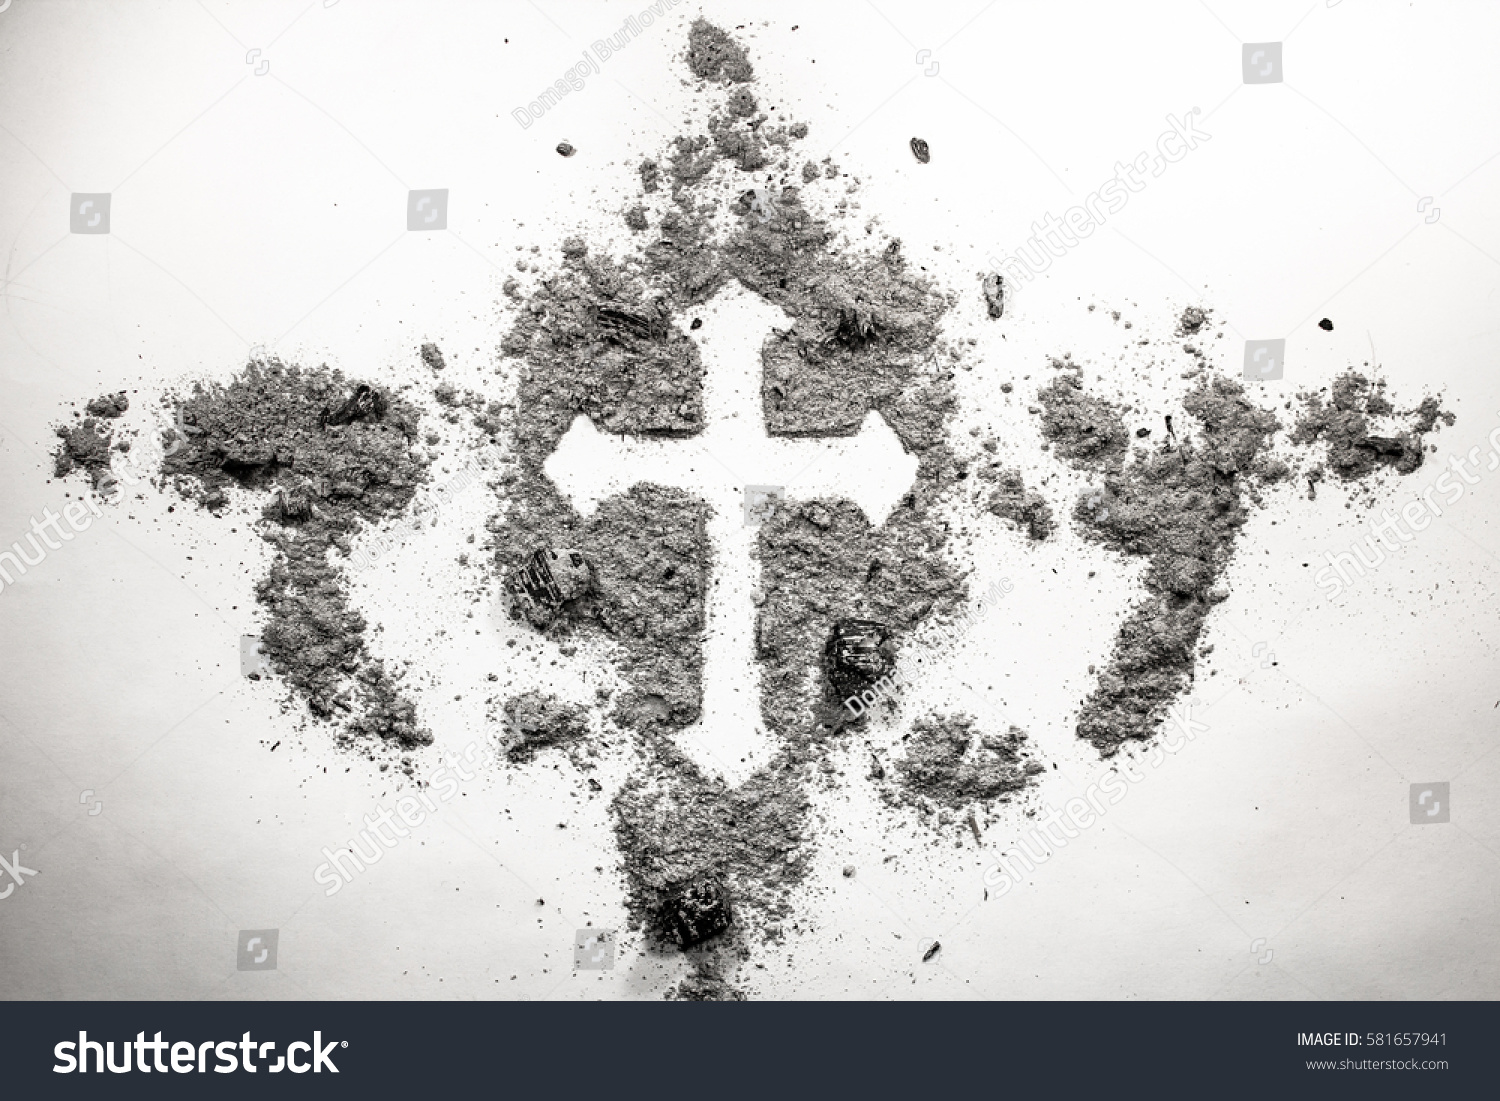 Christian cross drawing silhouette made ash stock photo 581657941 christian cross drawing silhouette made in ash dust dirt as ash wednesday holiday buycottarizona